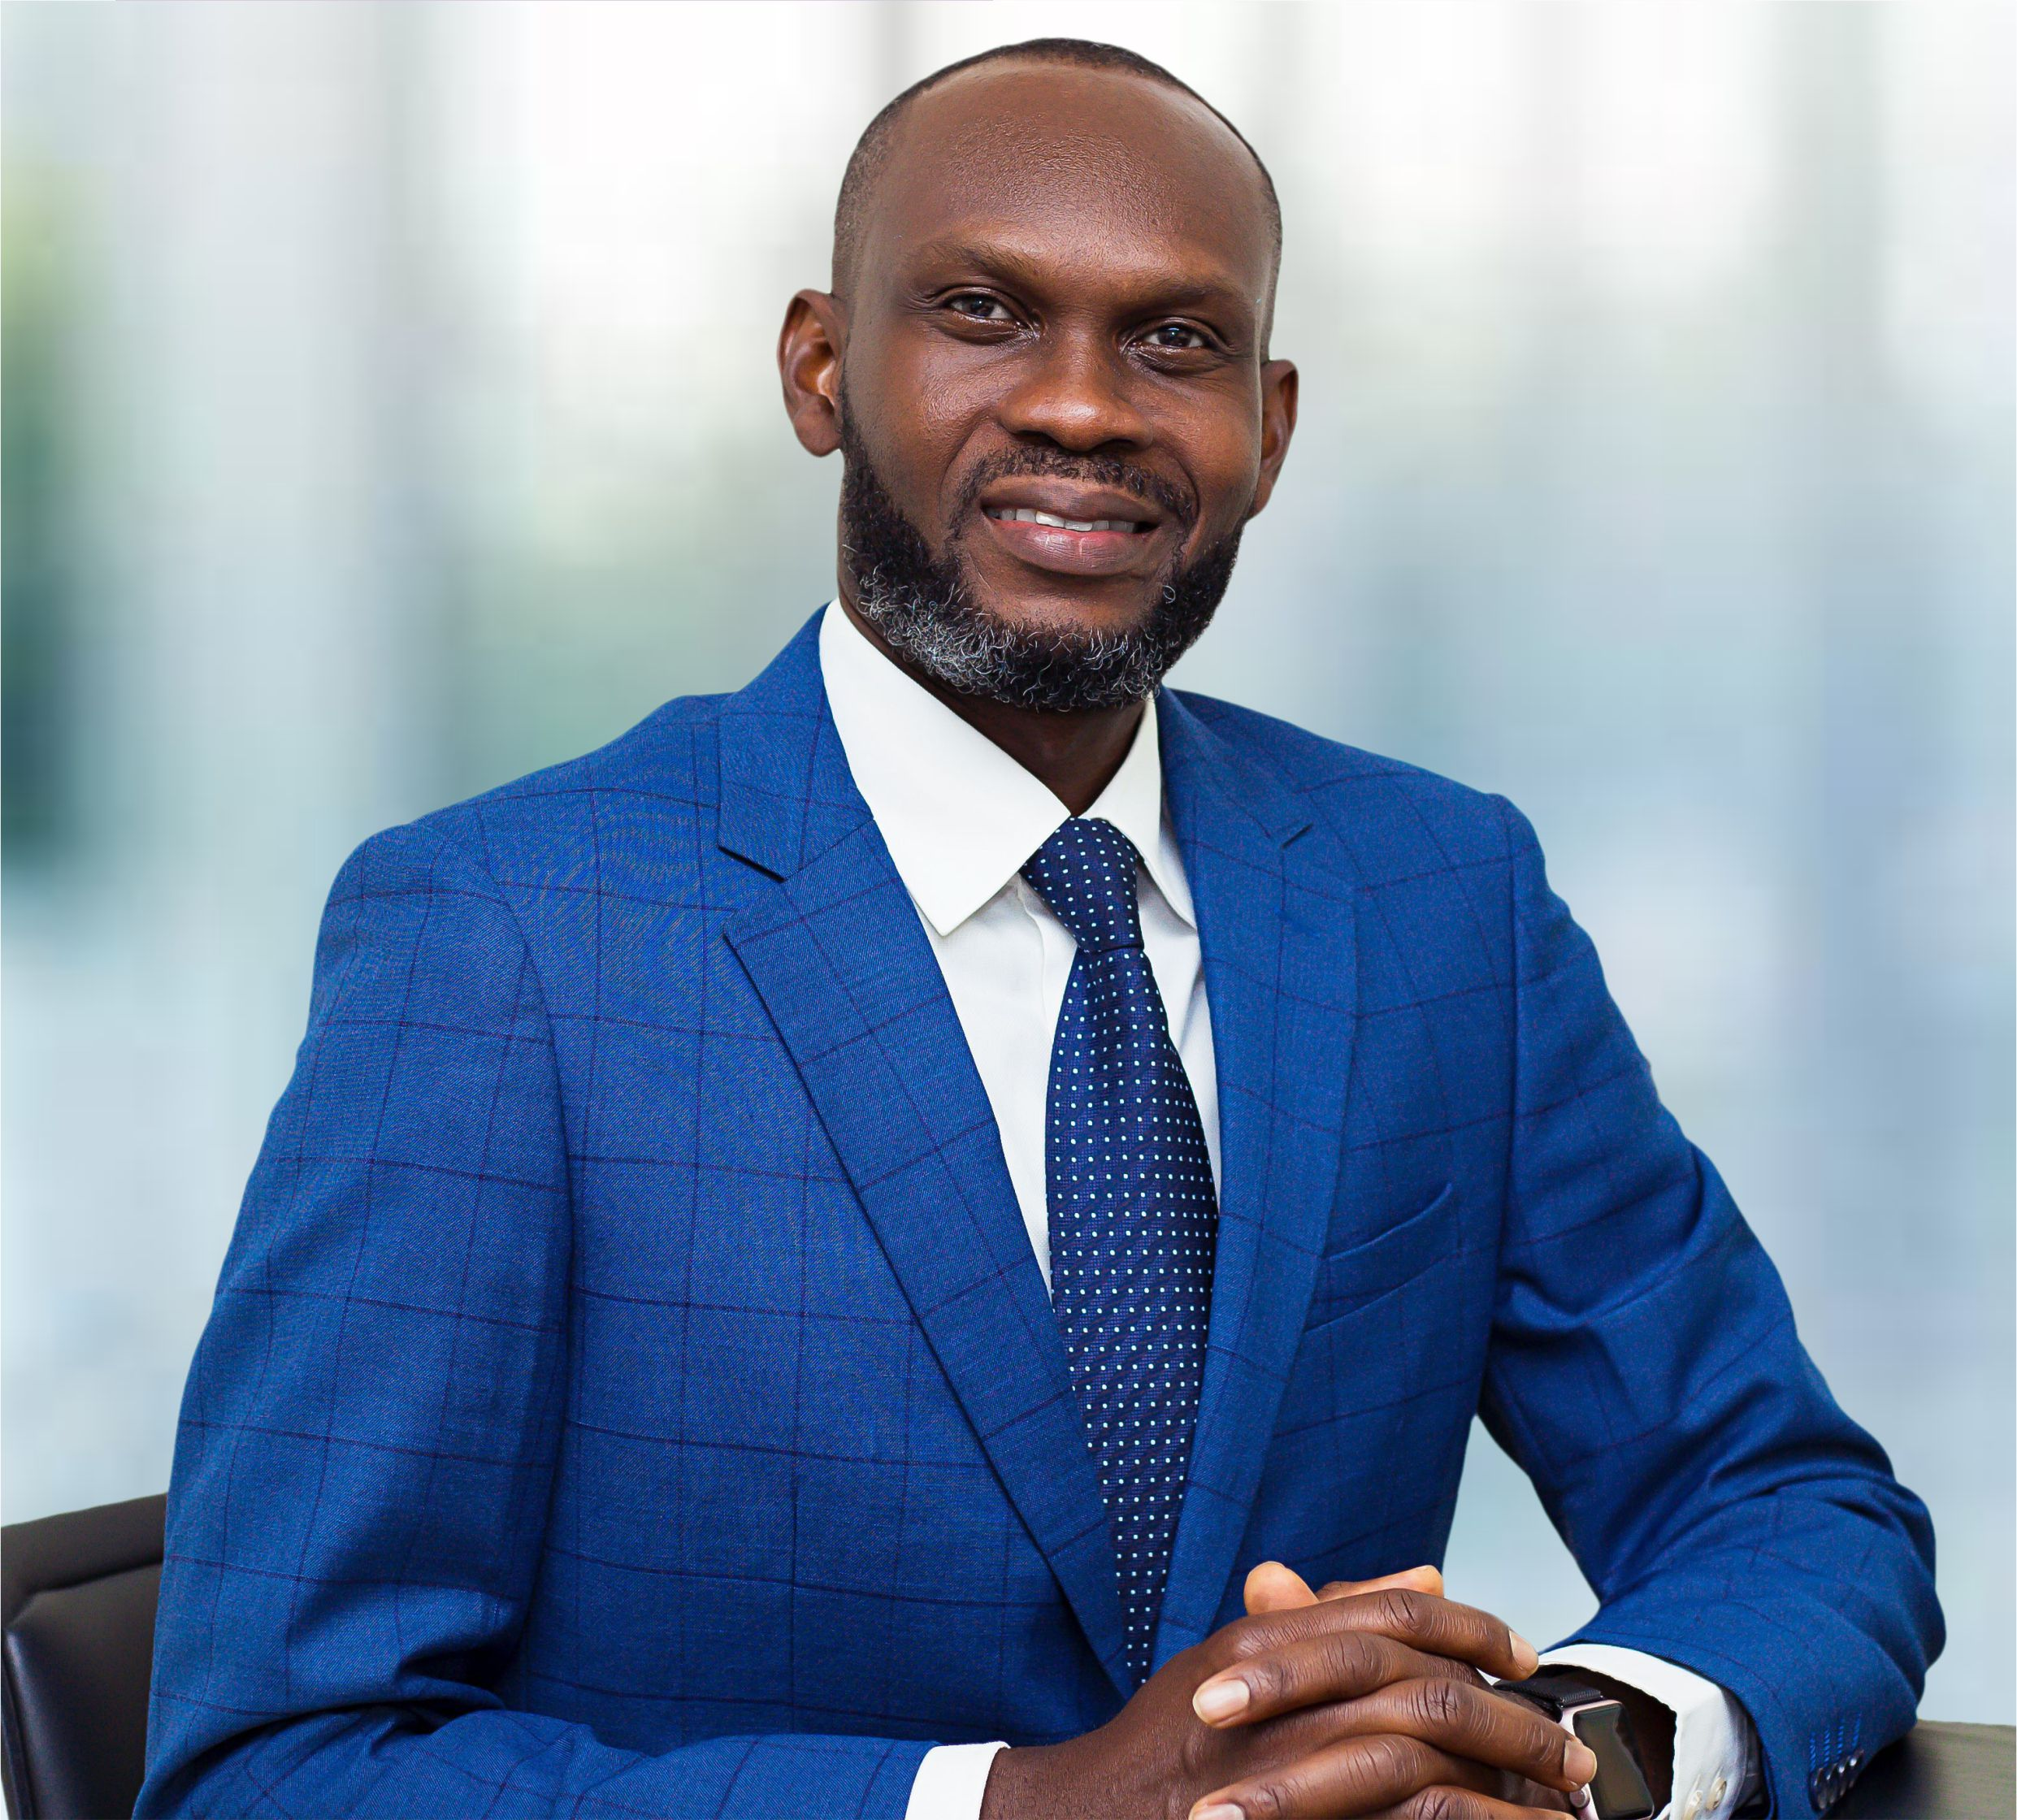 KPMG appoints new Partner - Jonah Ekow Annobil